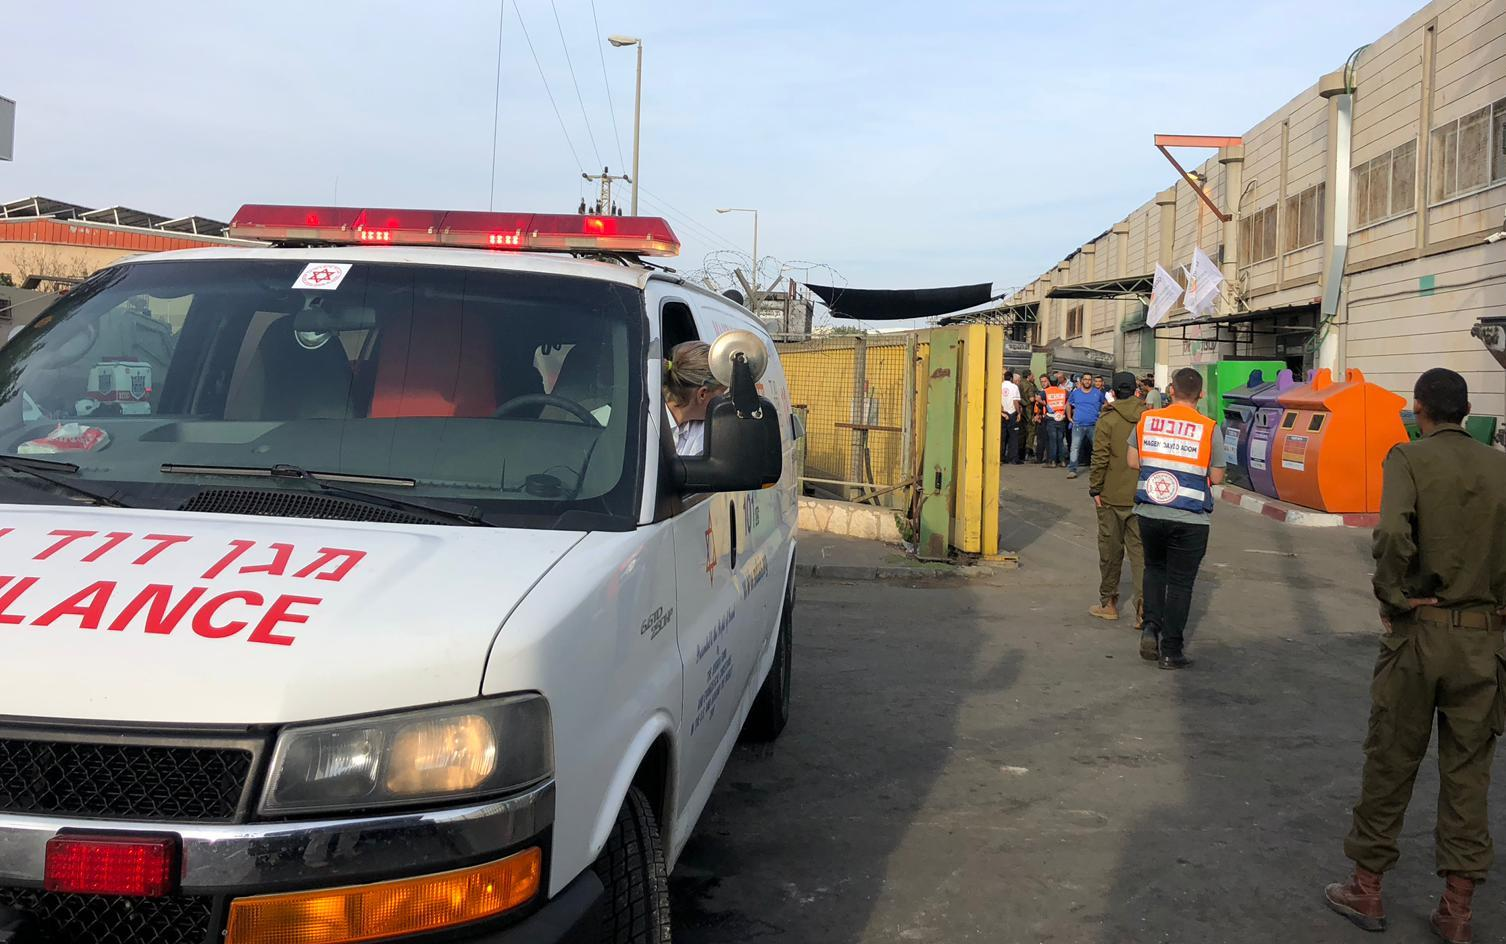 Medics and security forces arrive at the scene of a shooting attack in the Barkan Industrial Park in the northern West Bank